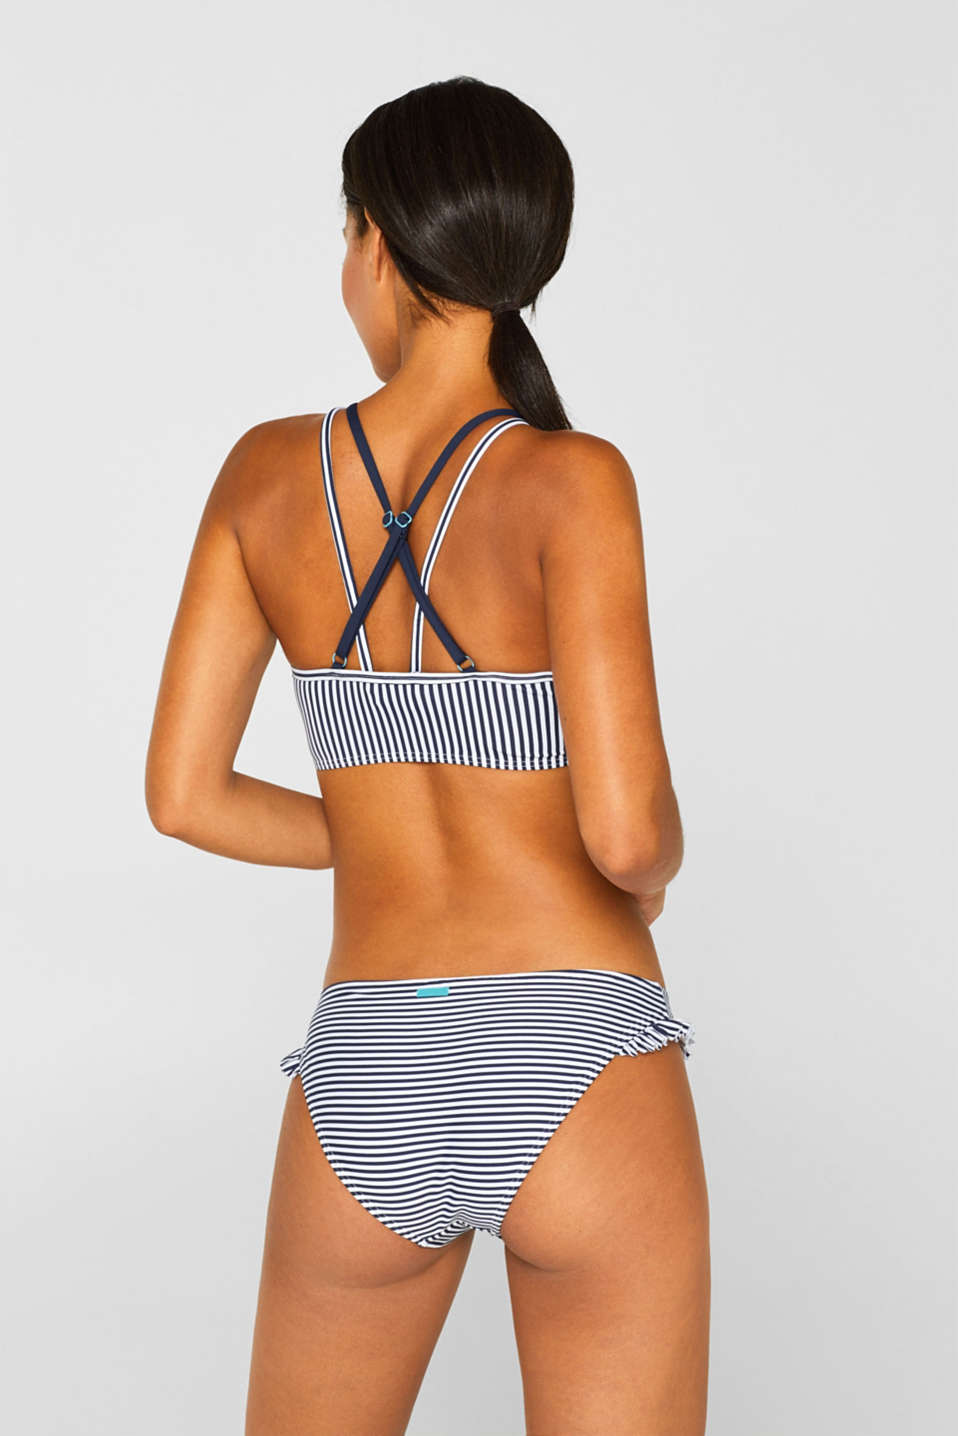 Padded high-neck top with crossed over straps, NAVY, detail image number 1